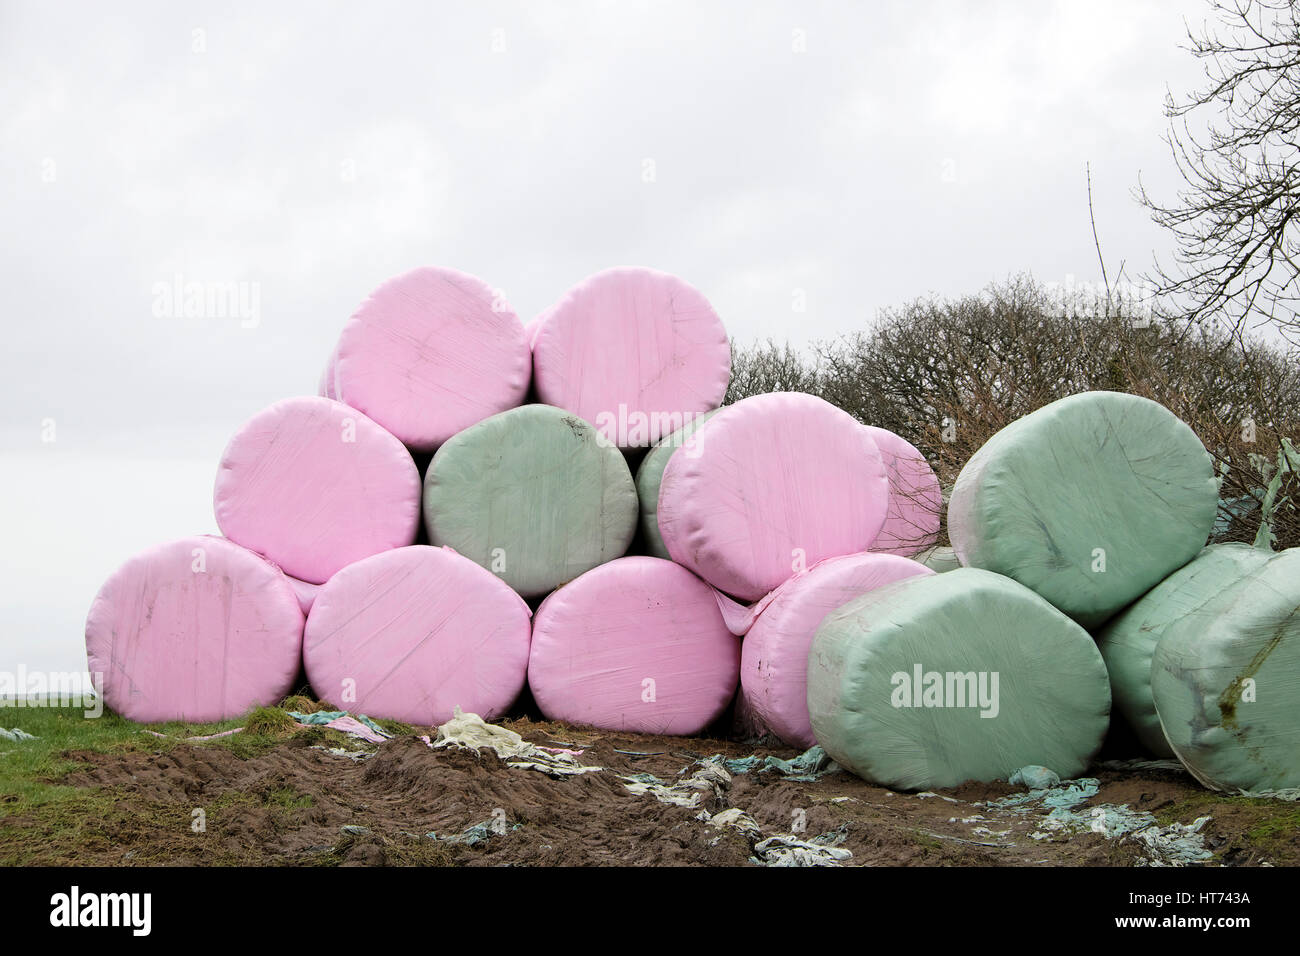 Bales Pink Stock Photos & Bales Pink Stock Images - Alamy